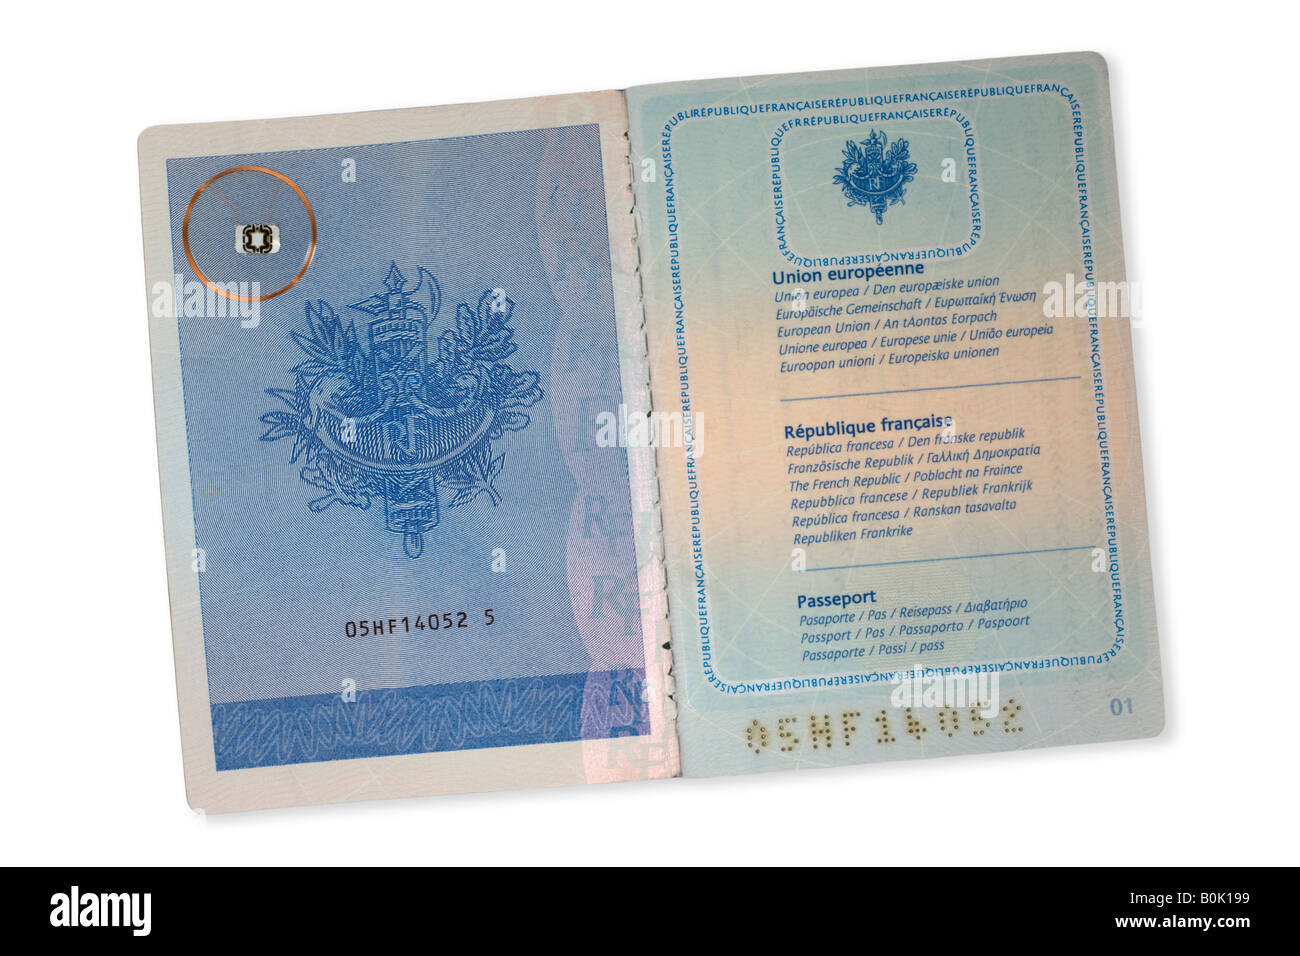 a rfid microchip on a french passport puce rfid sur un. Black Bedroom Furniture Sets. Home Design Ideas